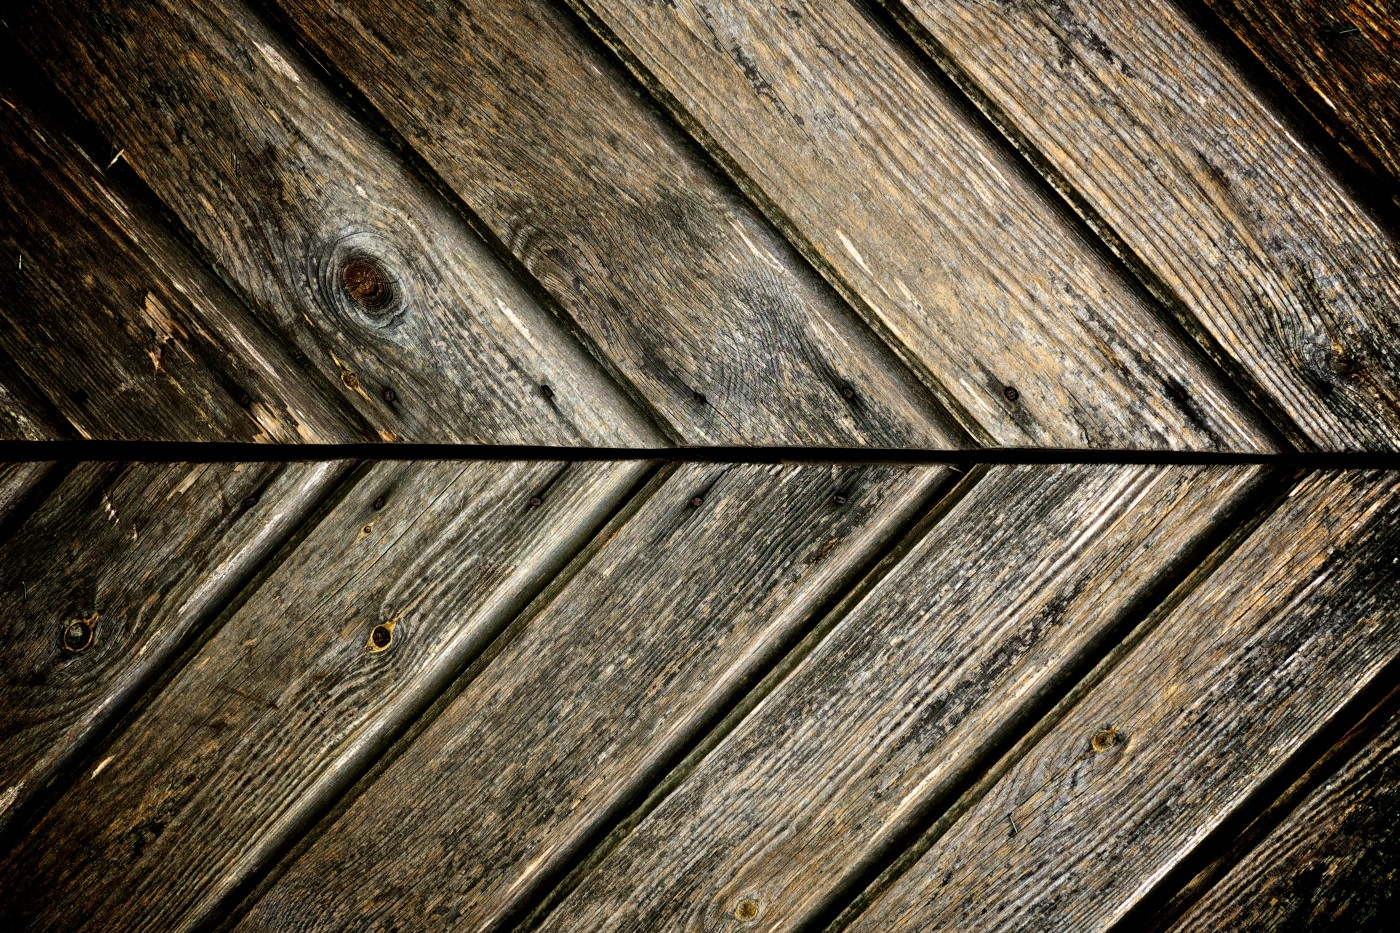 Lines on wood suggesting progress